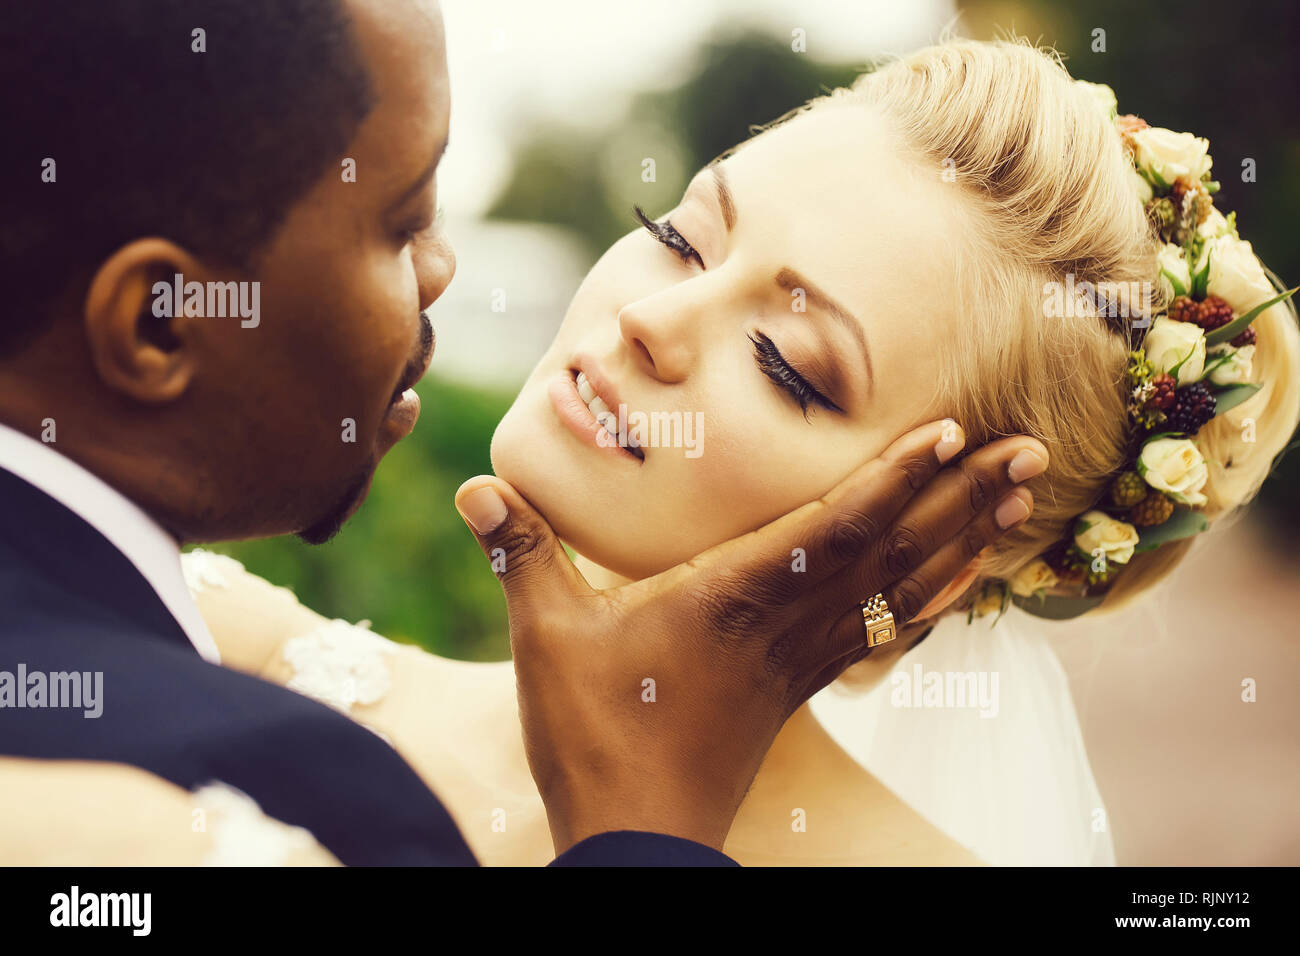 Groom touches face of bride - Stock Image